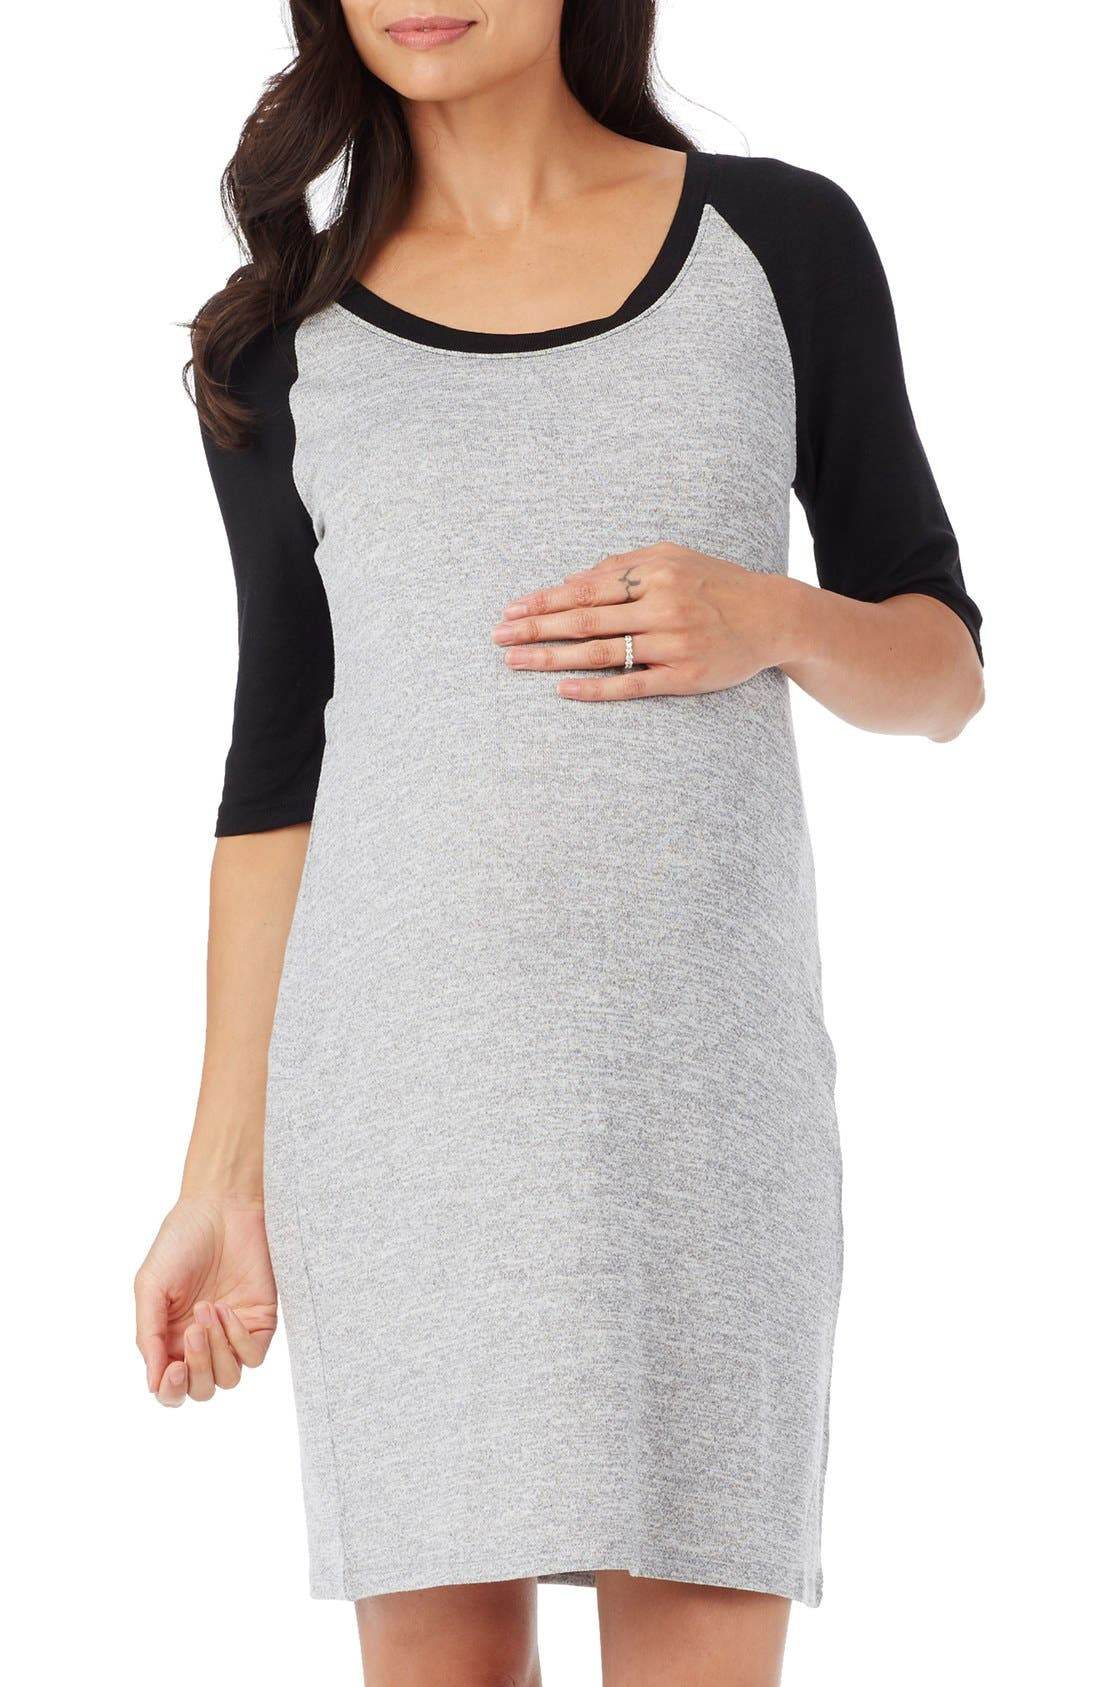 Rosie Pope 'Derek' Raglan Sleeve Maternity Dress